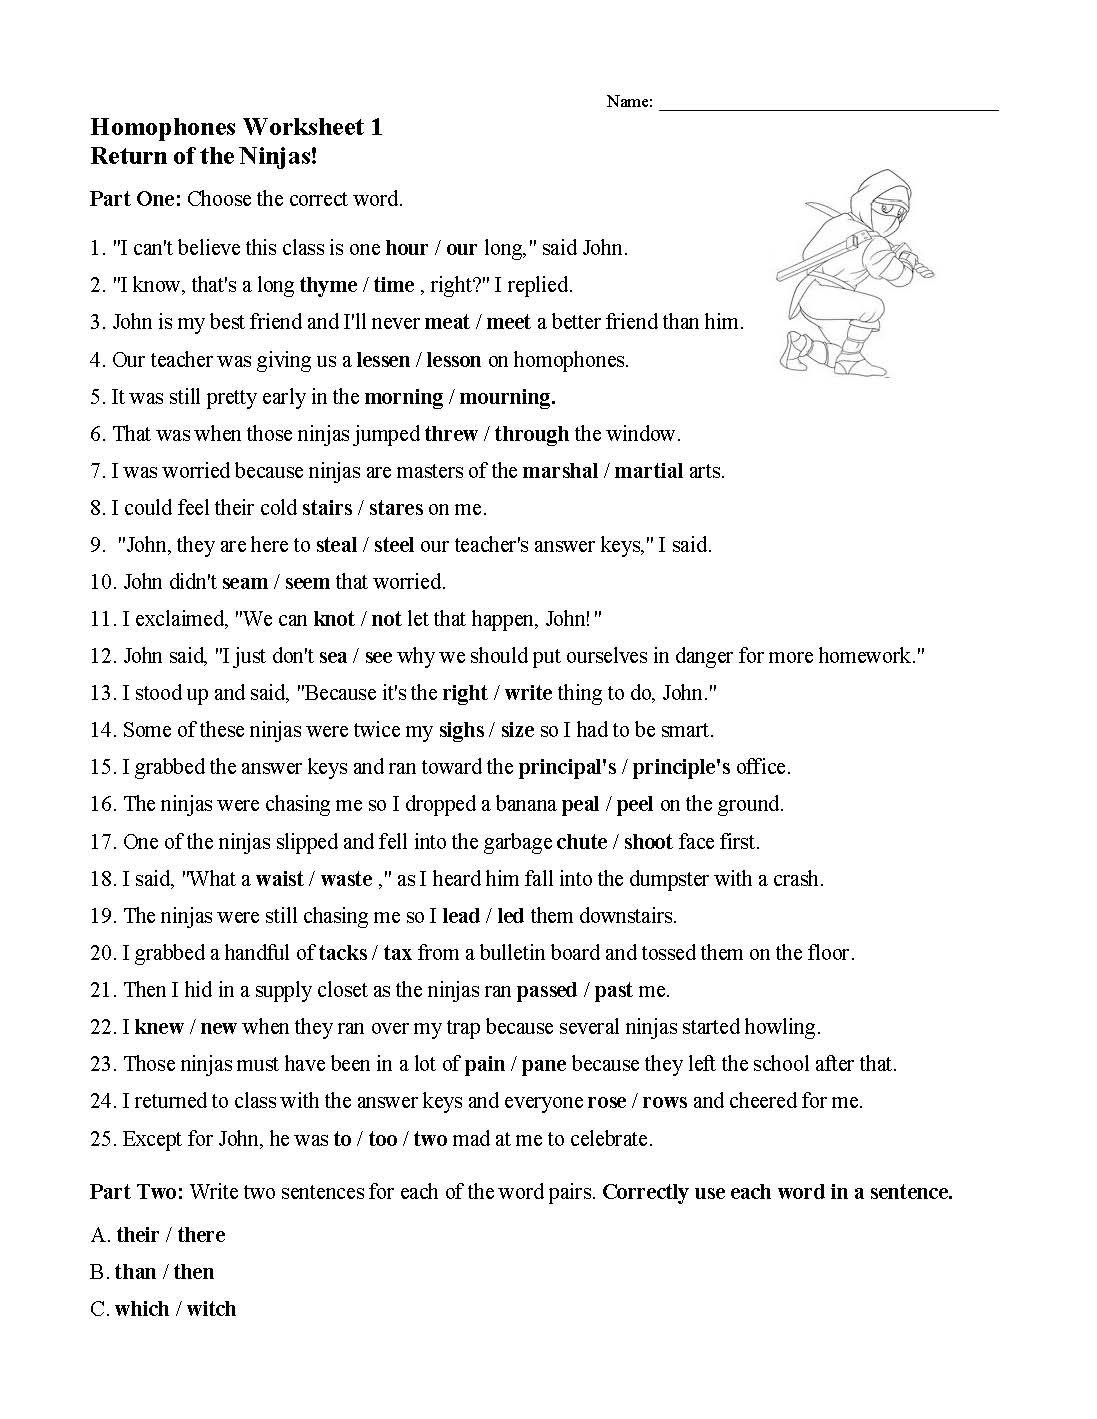 Homophone Worksheets 5th Grade Homophones Worksheet English